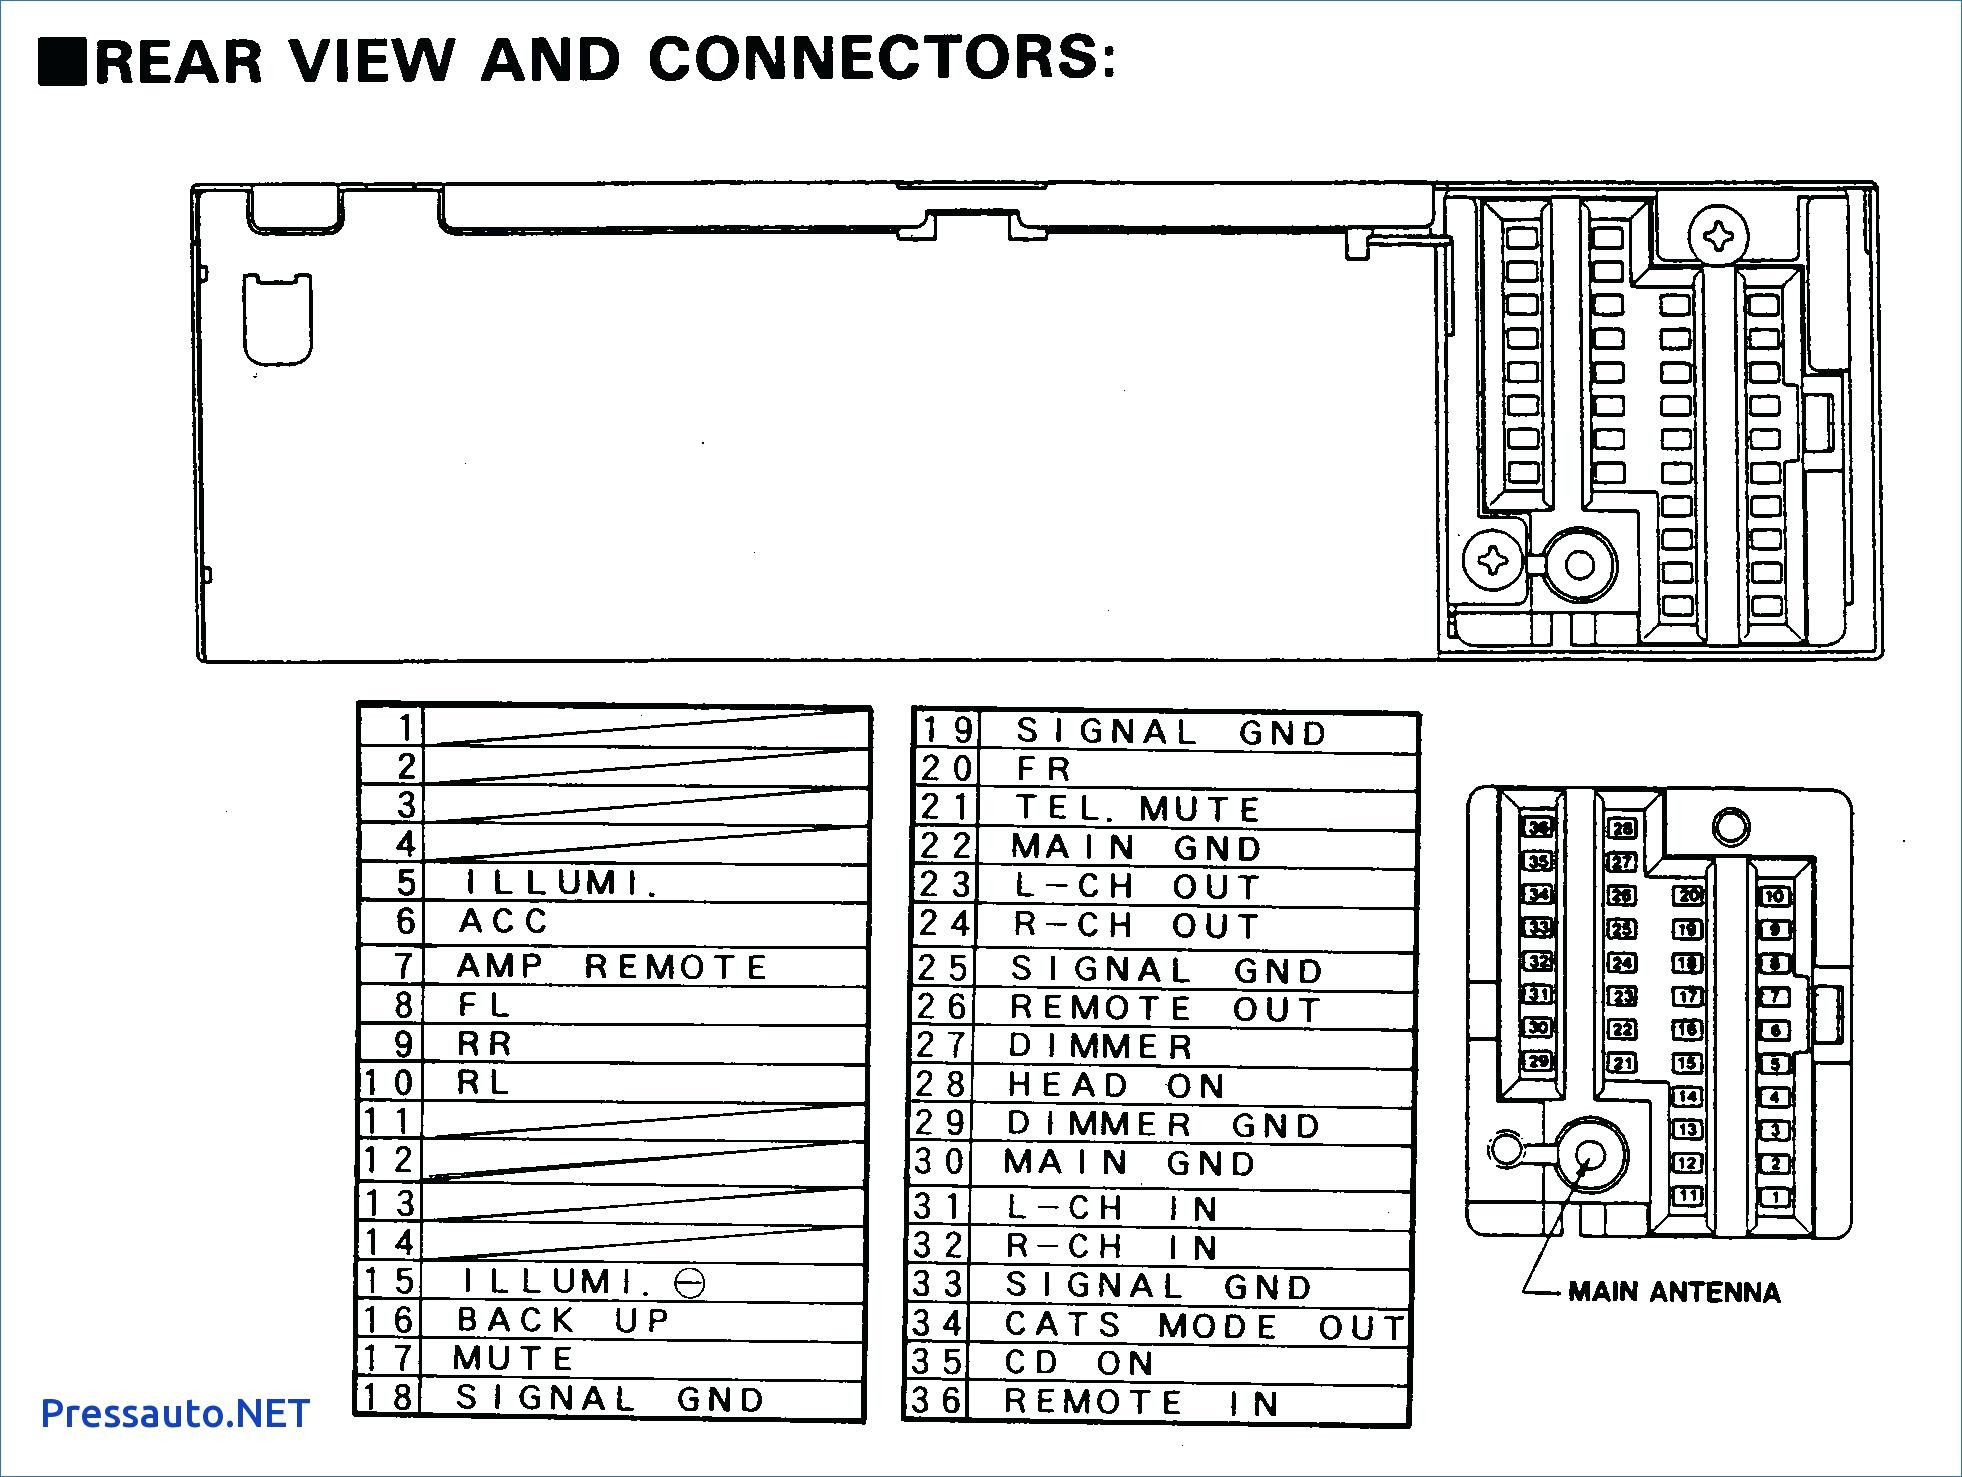 Toyota Camery Wiring Schematics Daily Update Diagram 2001 Camry I L Engine Anything Diagrams Download